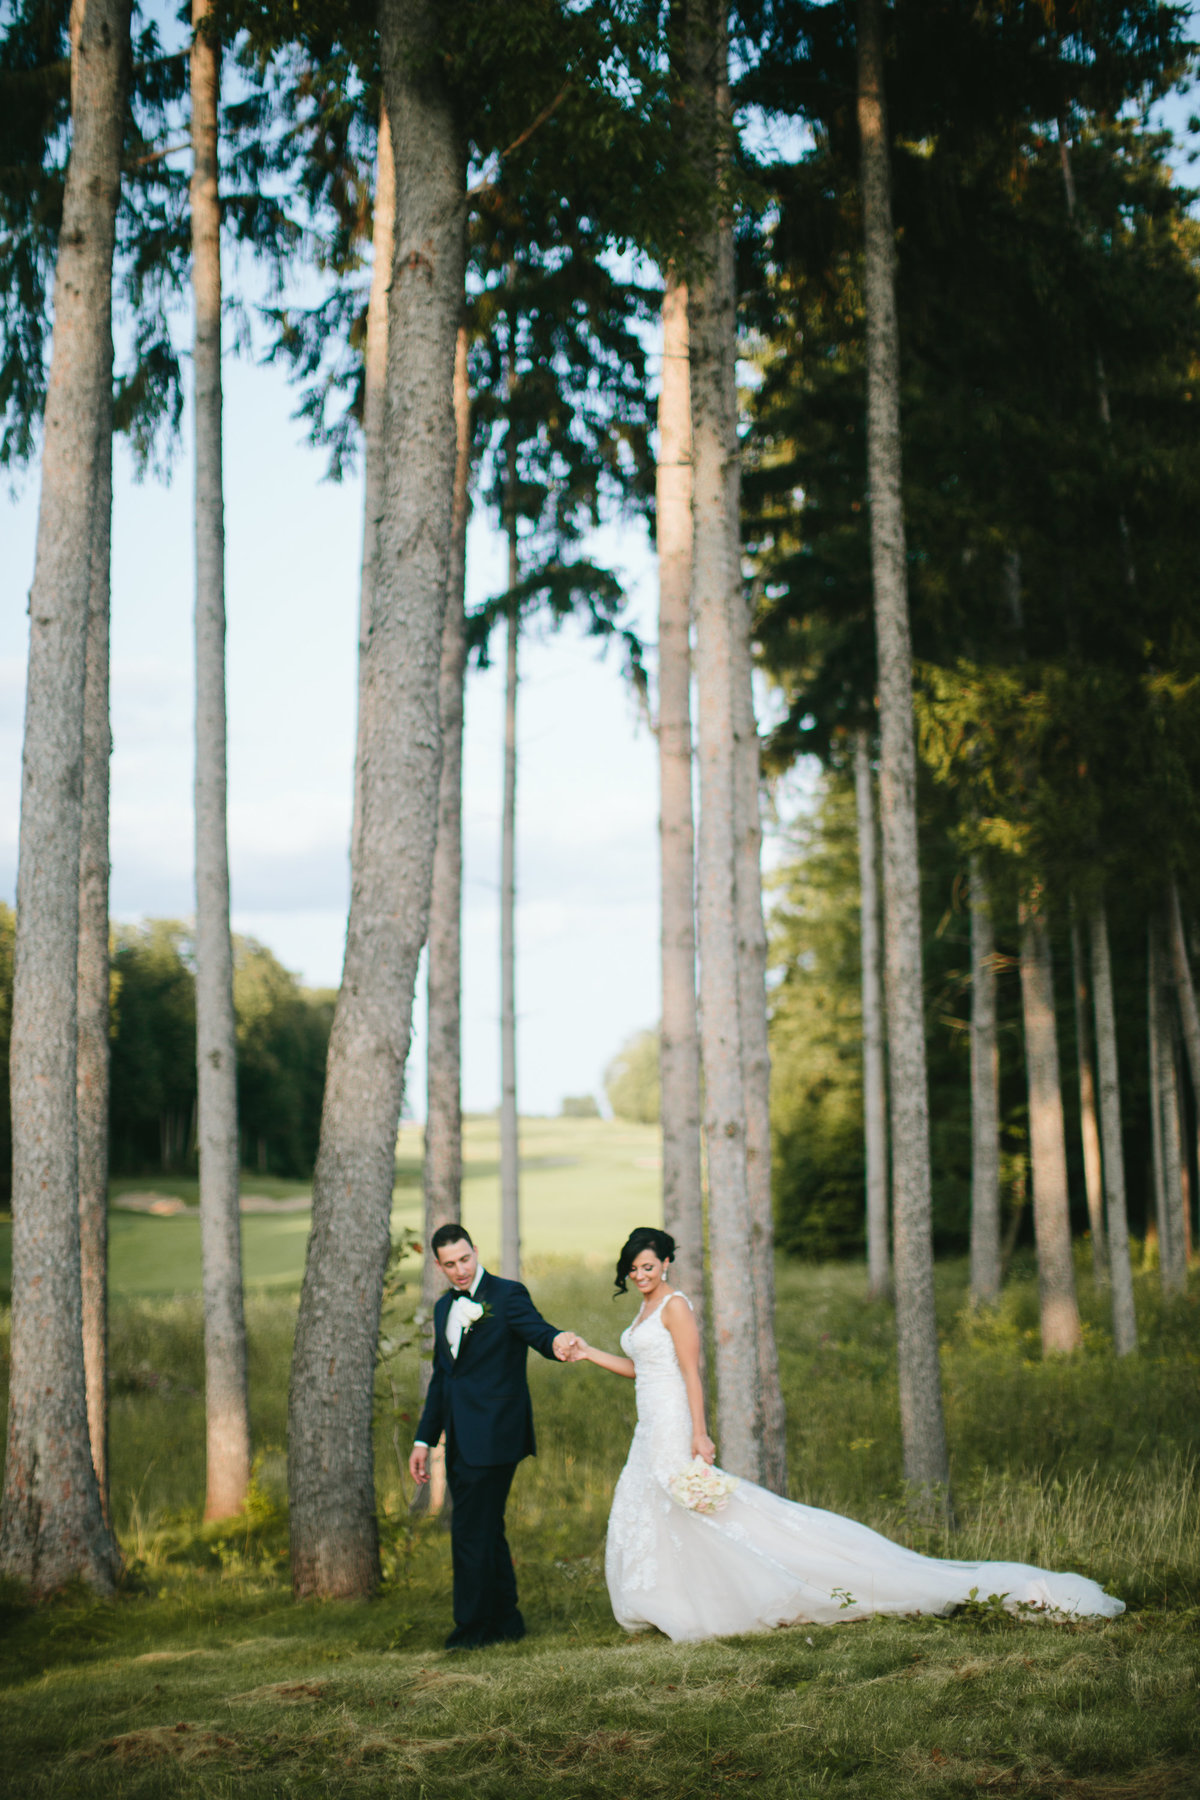 thelodge-turningstone-lodge-turning-stone-turningstonewedding-brideandgroom